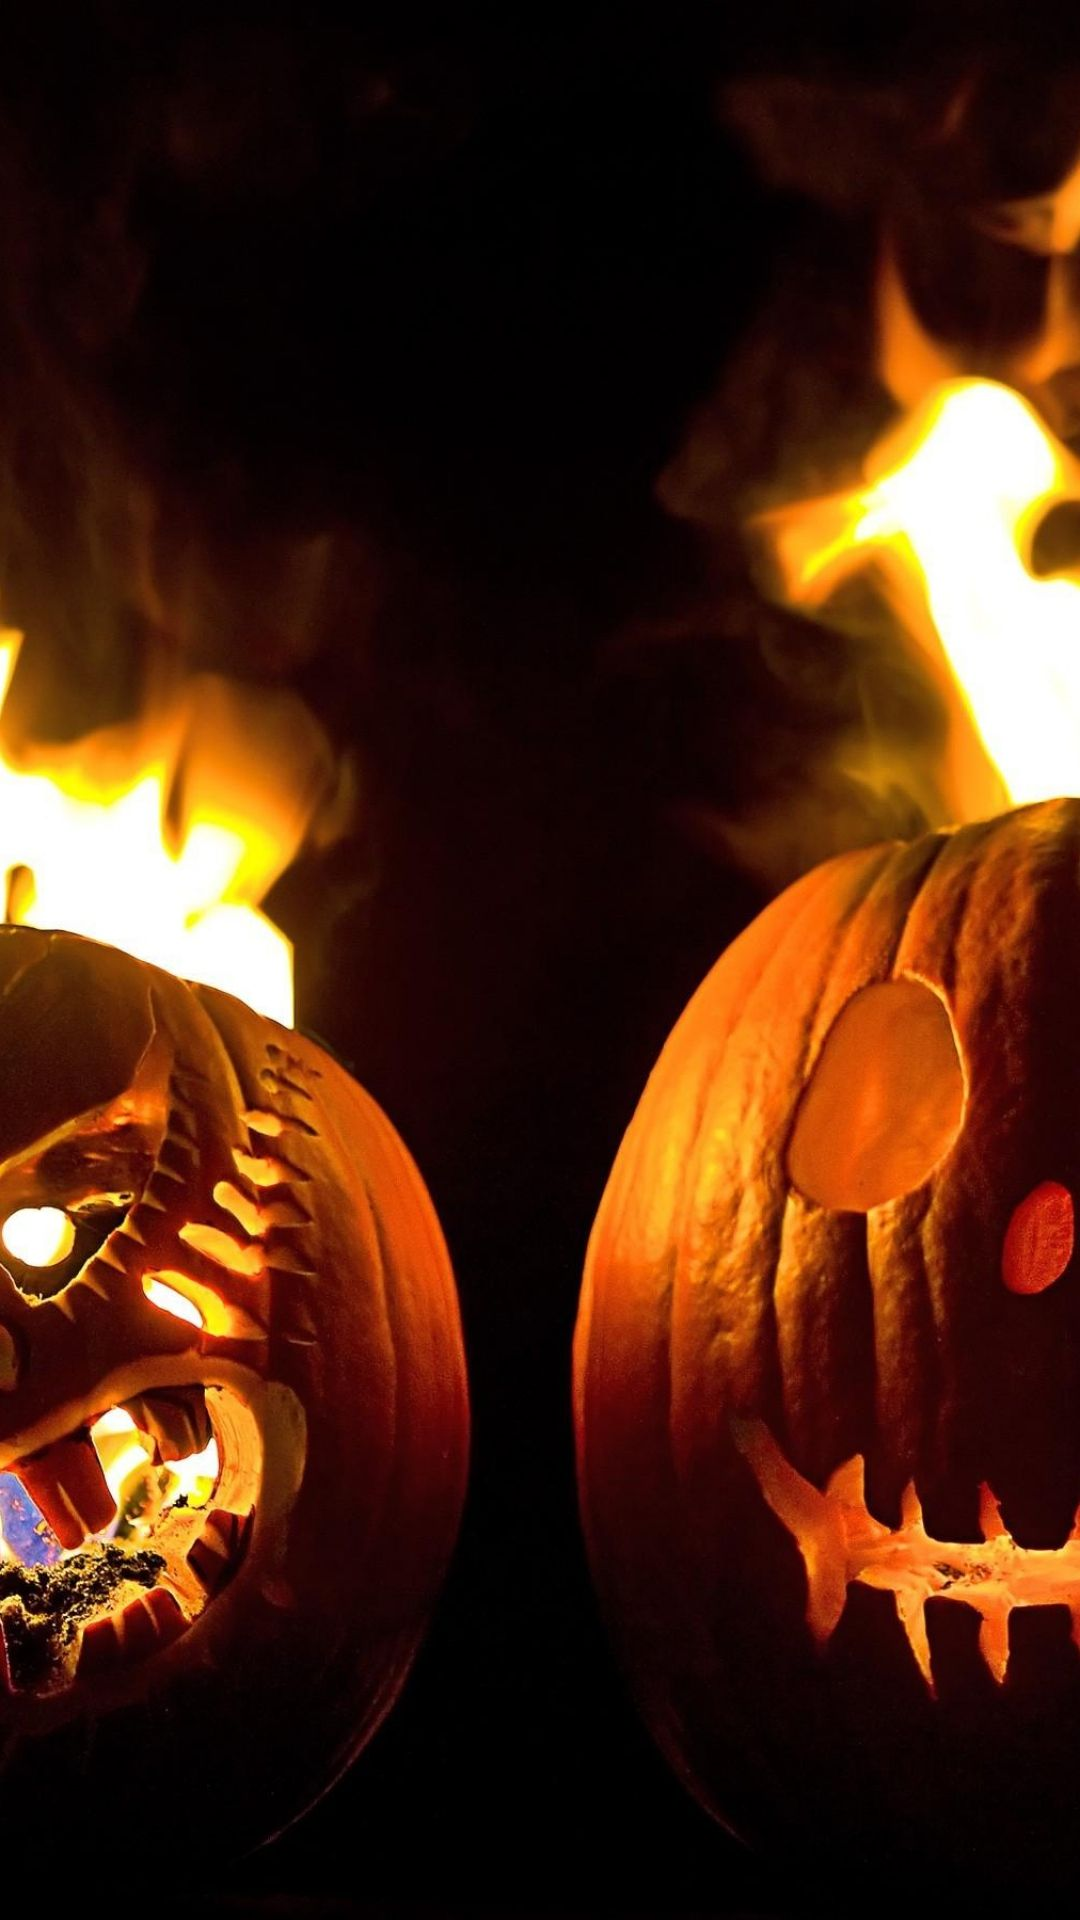 1080x1920 Two Halloween Pumpkins Fire Android Wallpaper free download